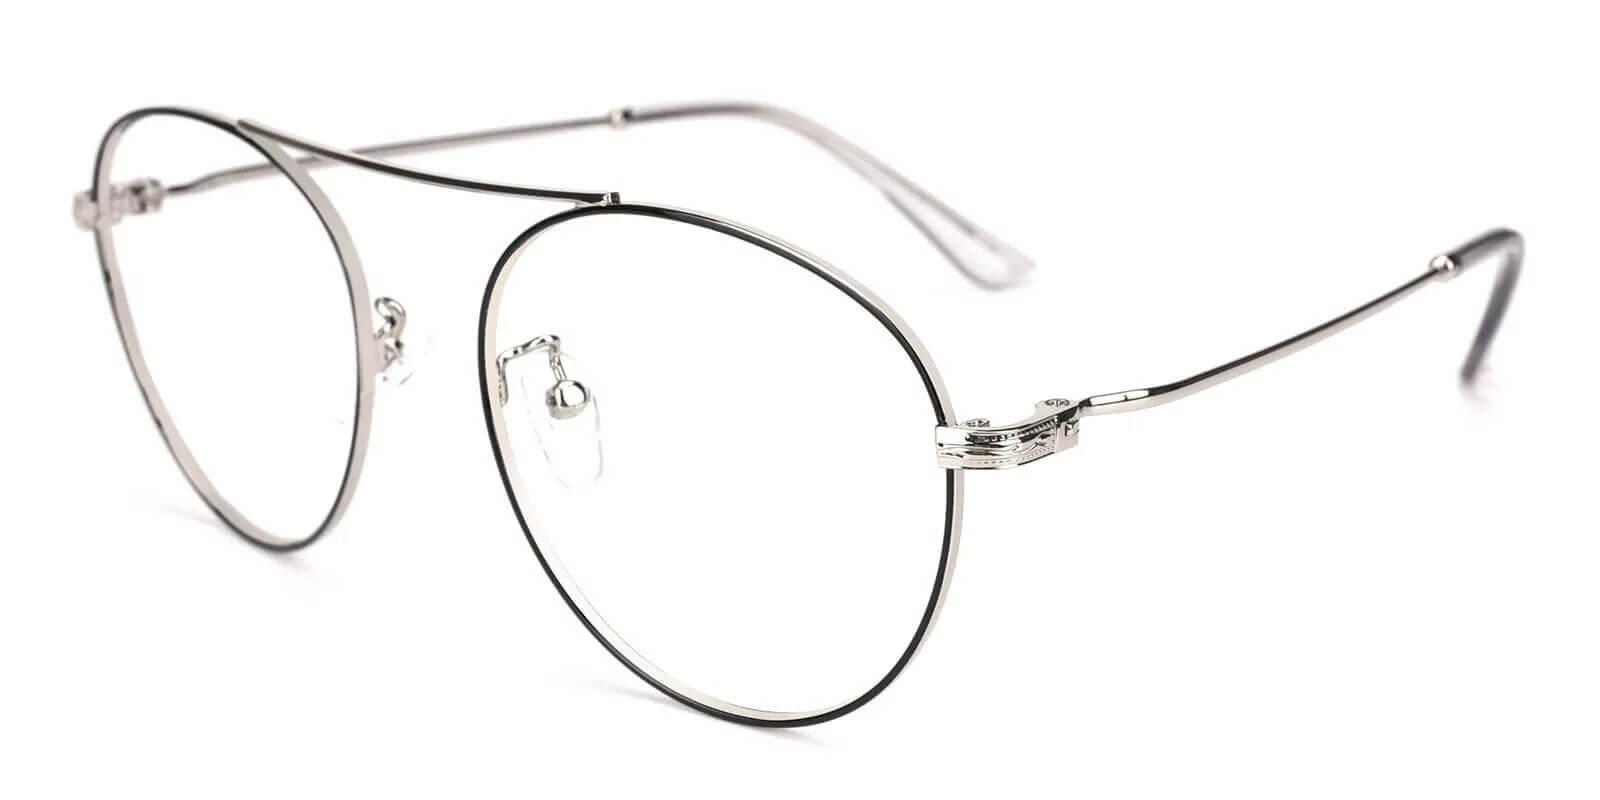 Chloe Silver Metal Eyeglasses , NosePads Frames from ABBE Glasses